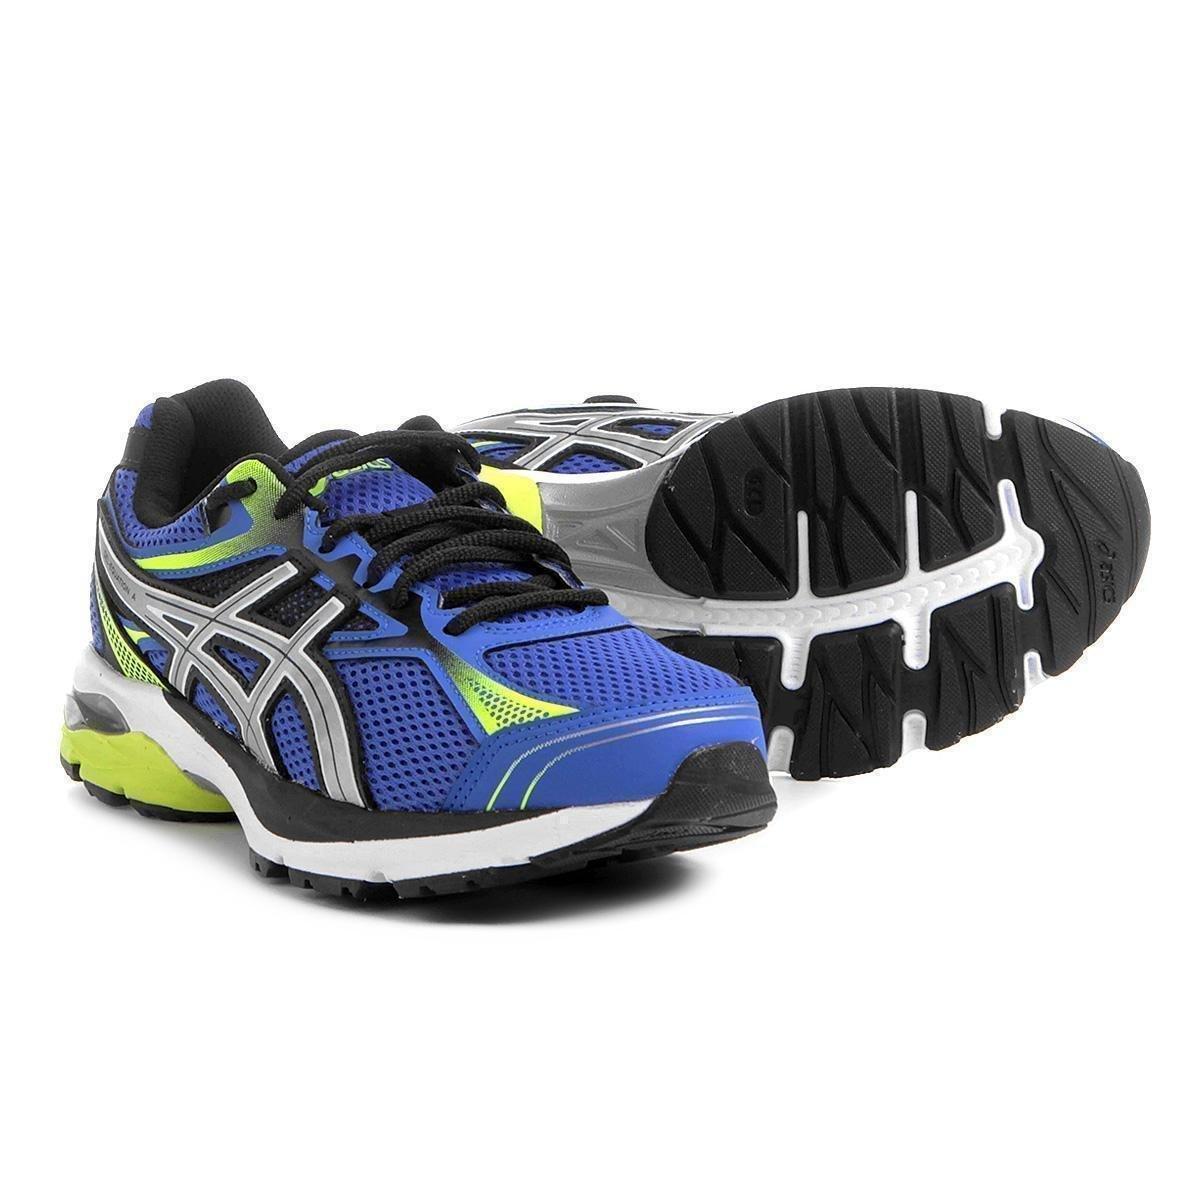 adb9348b61 ... Prata Equation Gel Equation Tênis 9 Gel Masculino 9 Tênis Asics Asics e  Azul g7Cqdw7 ...